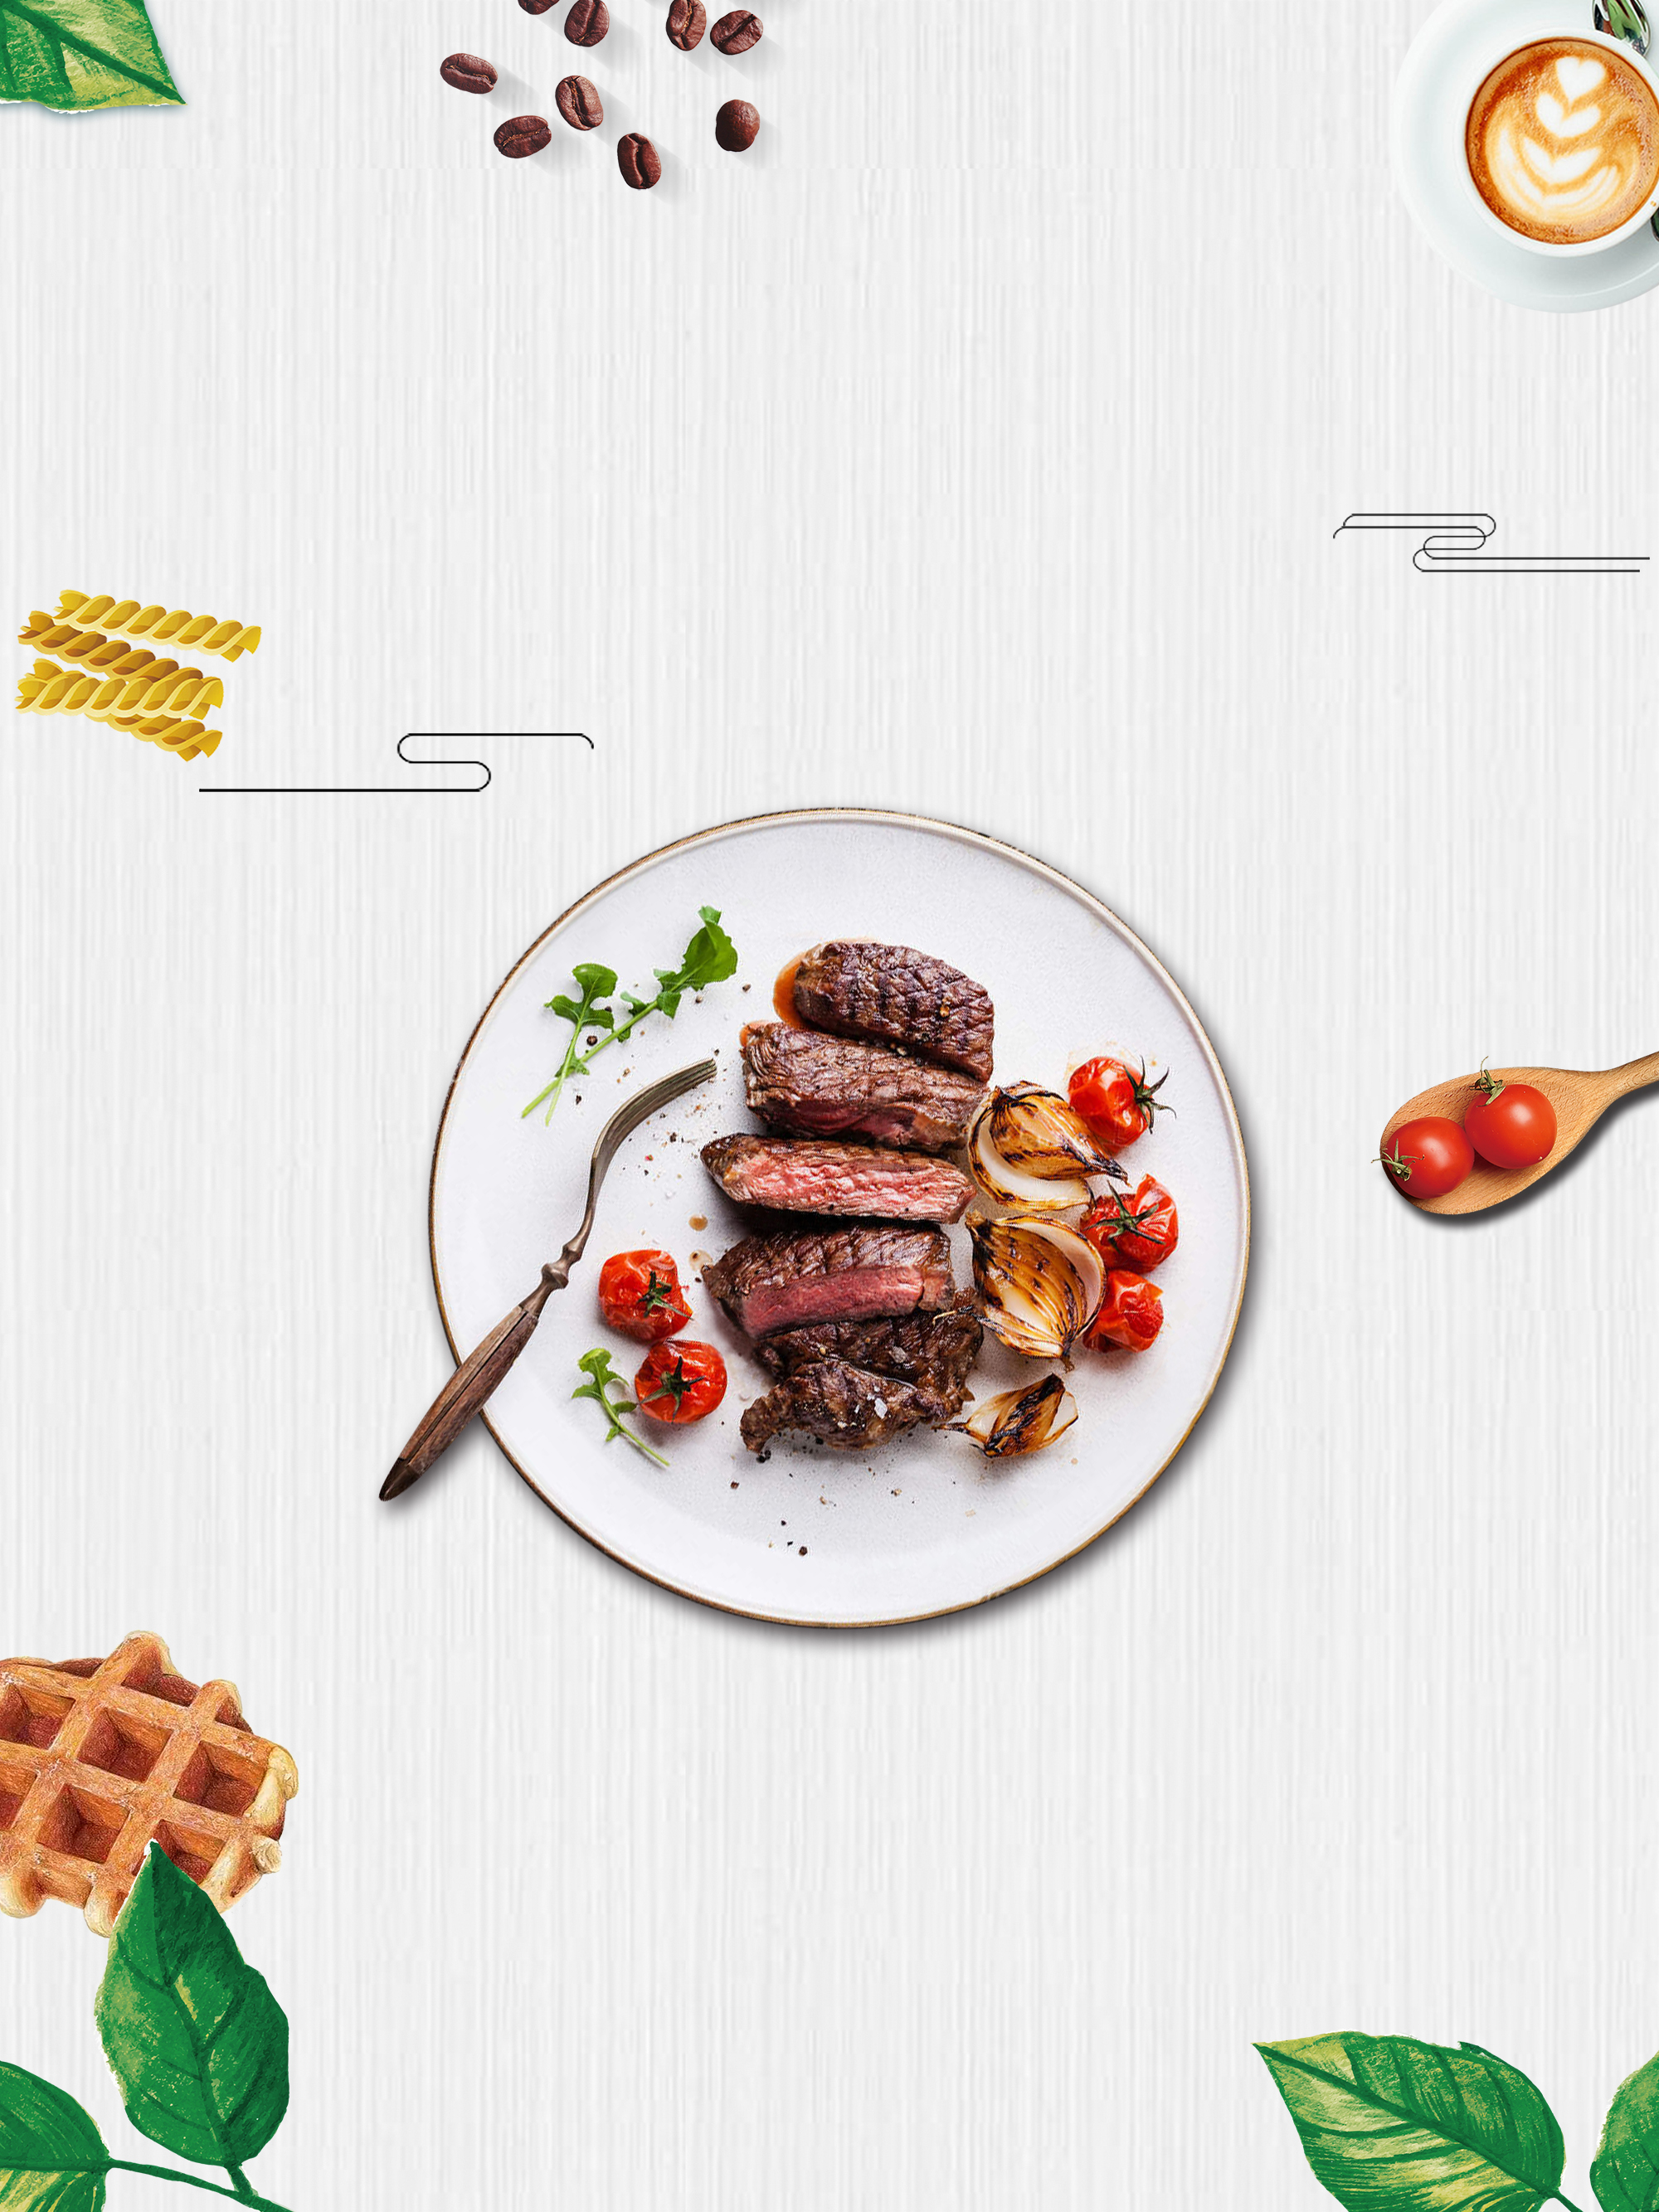 Wallpaper Food Cooking Grill Vegetables Peppers: Food Plate Pepper Meat Background, Healthy, Cuisine